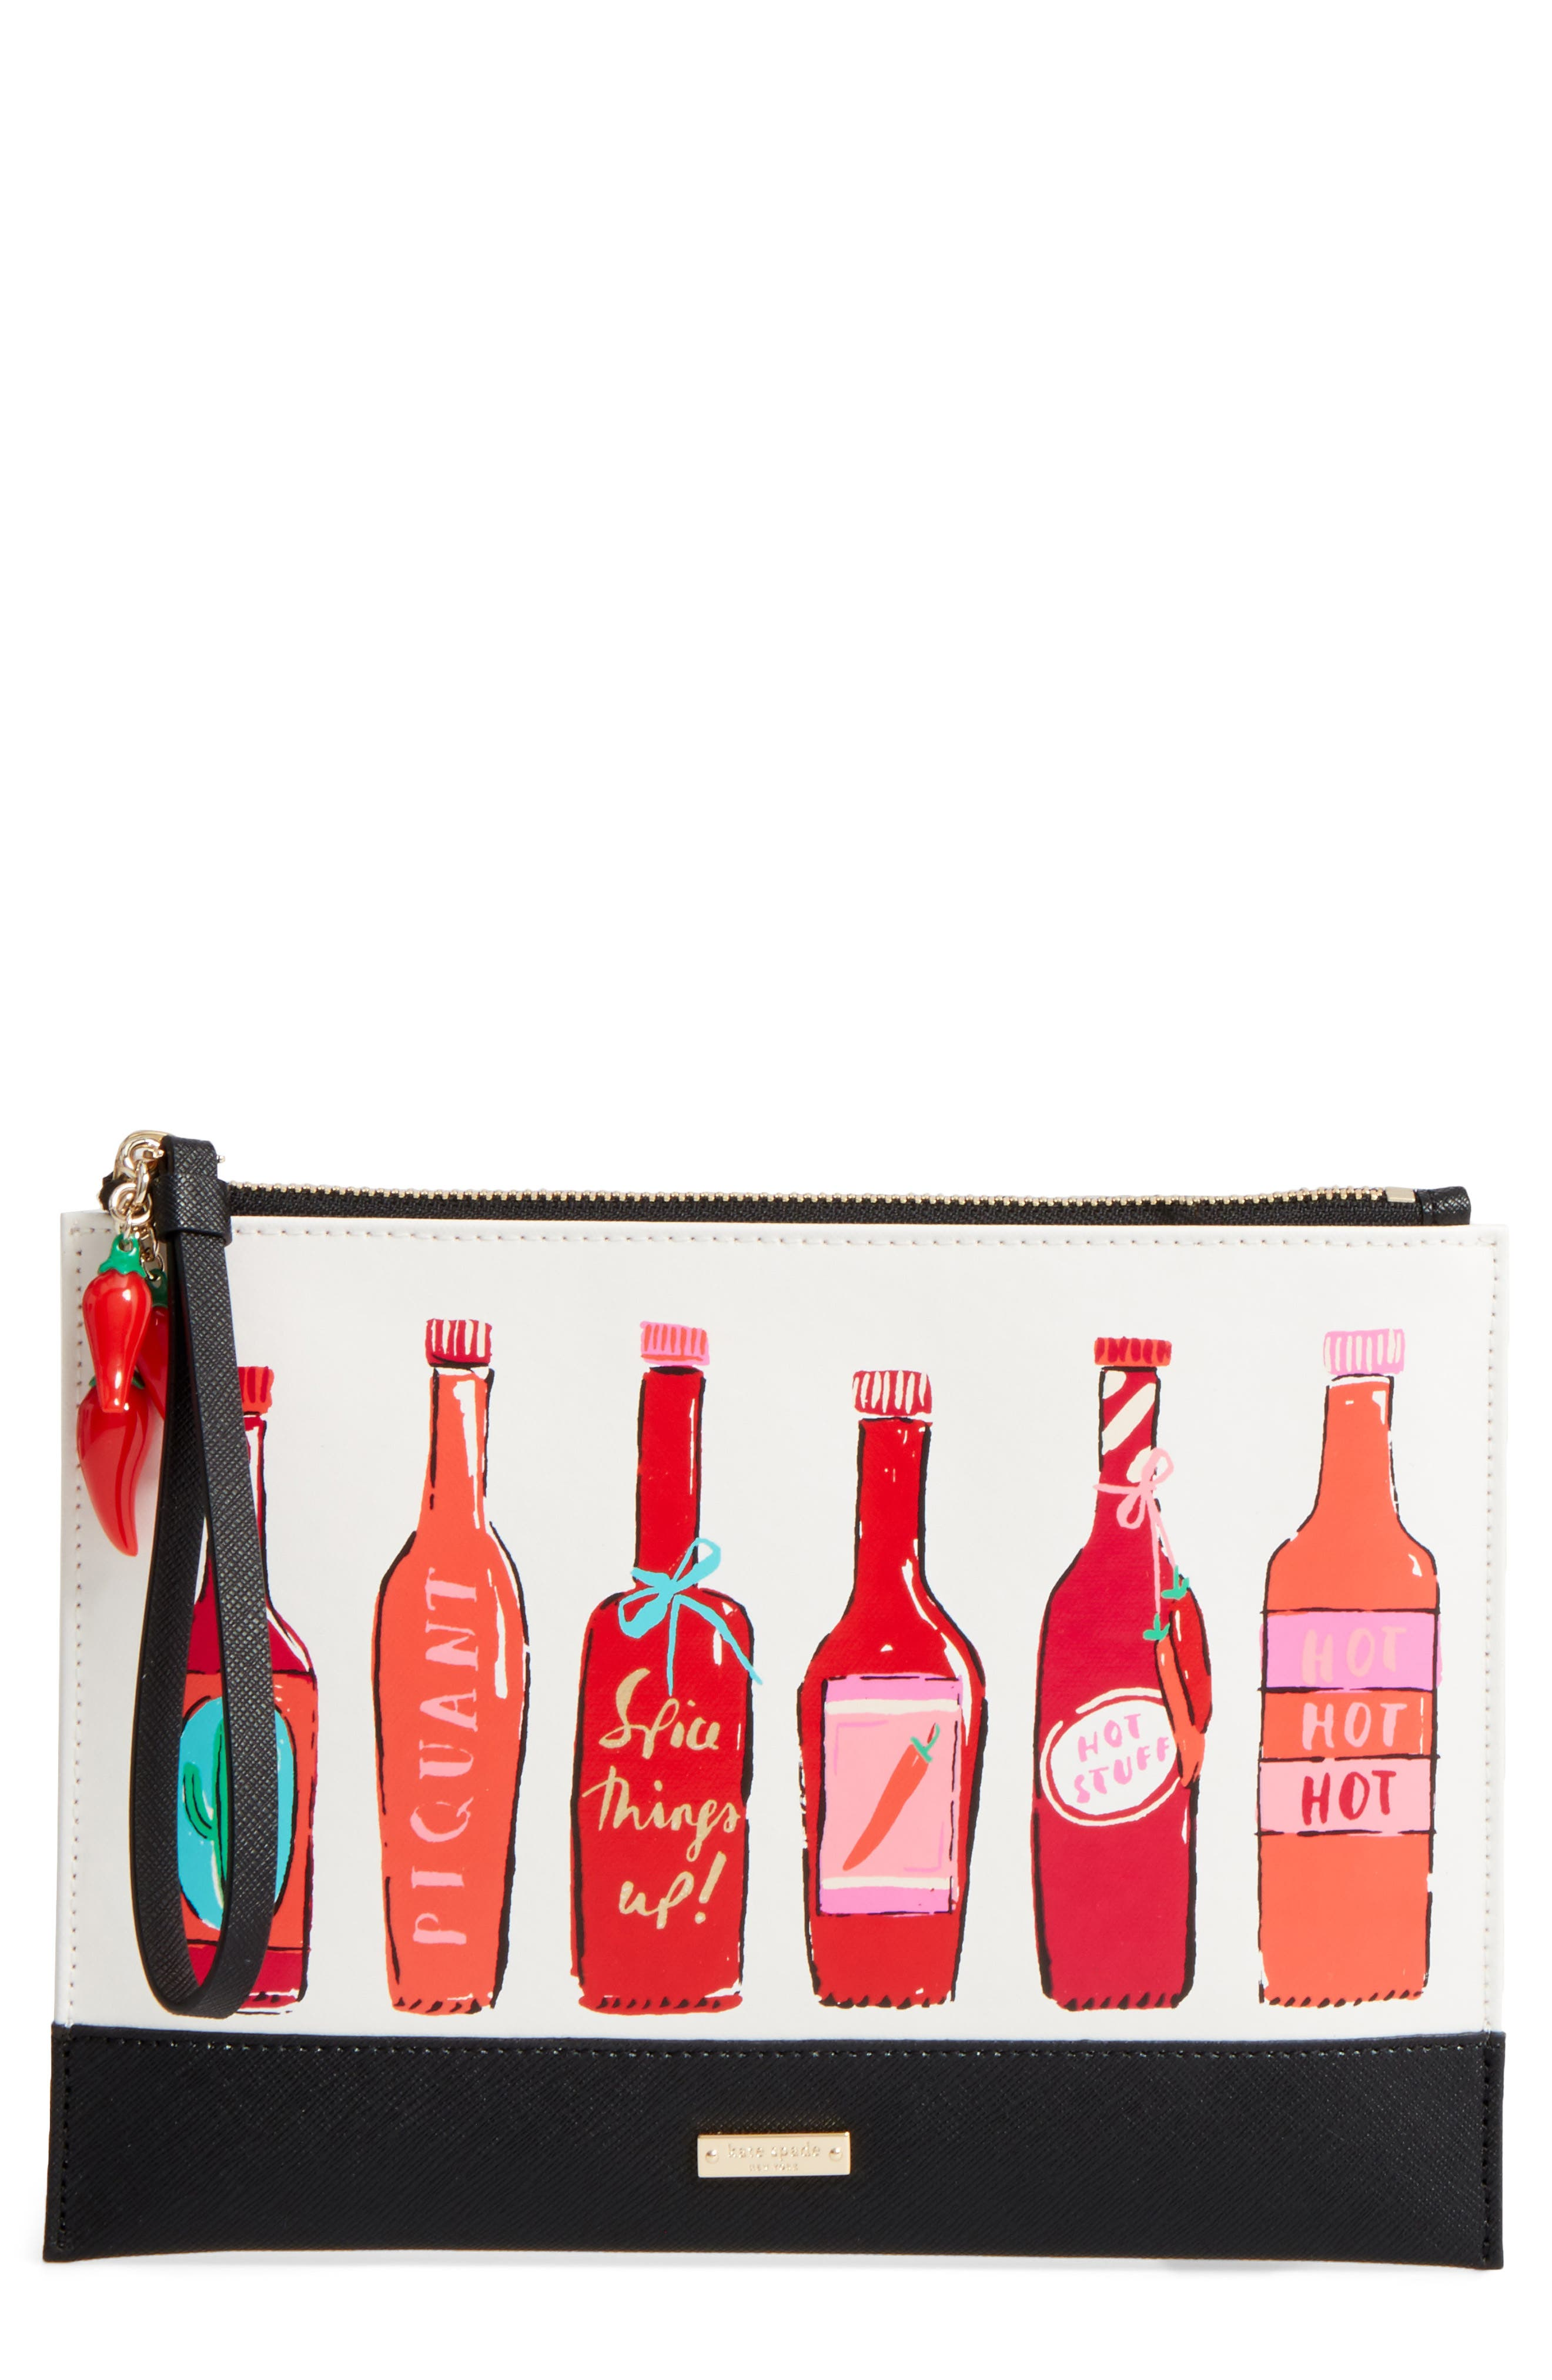 KATE SPADE NEW YORK spice things up zip pouch